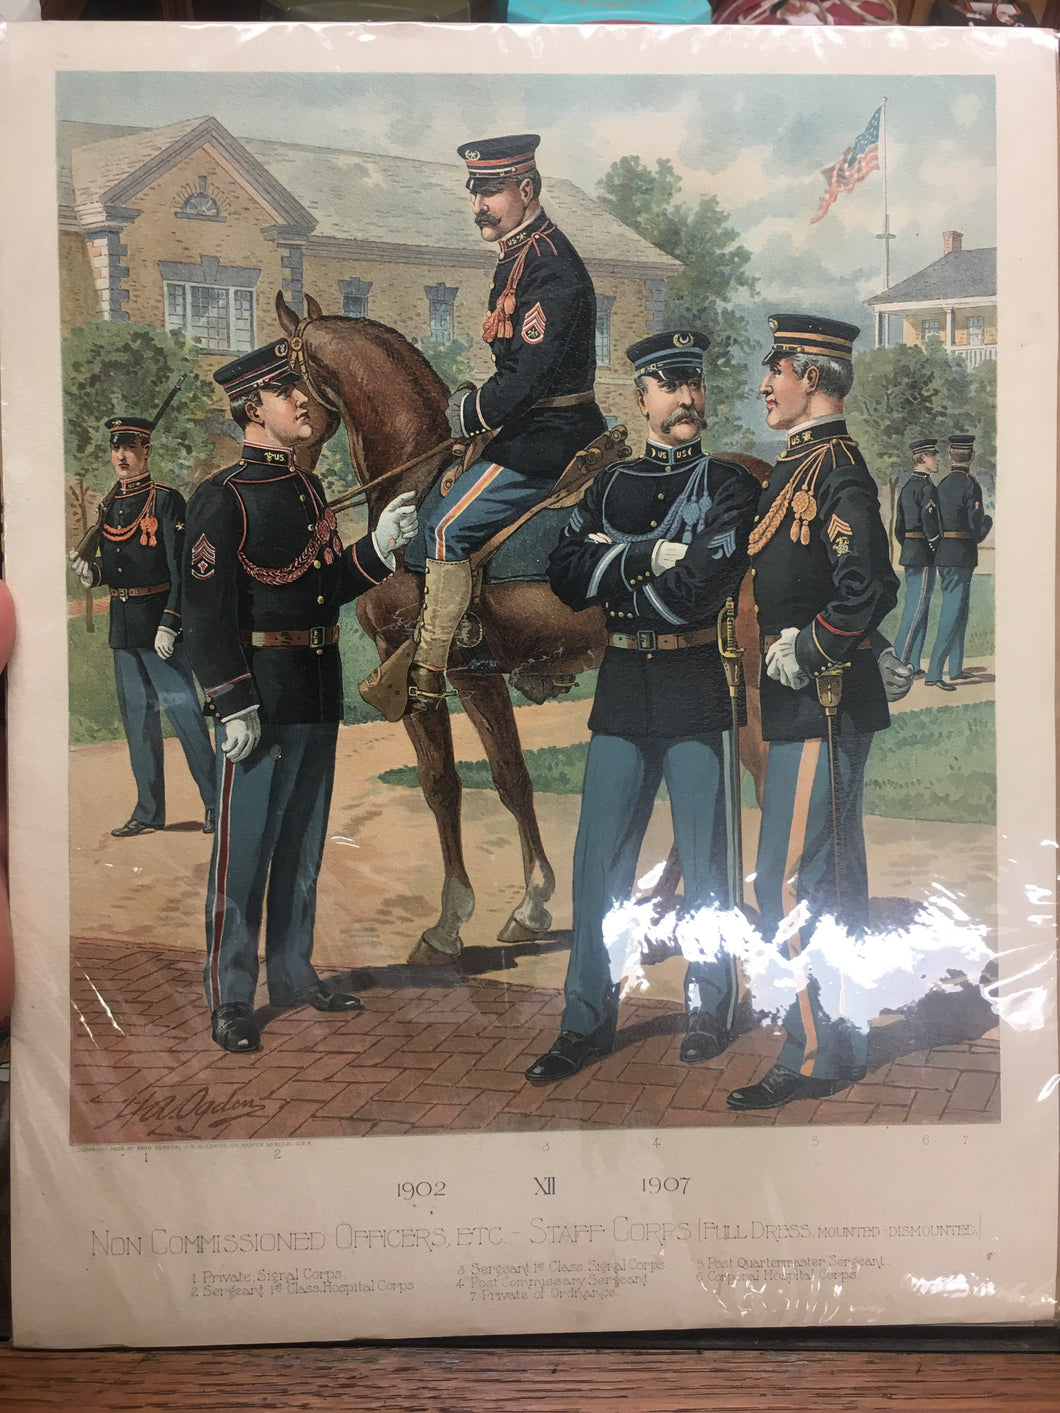 Vintage Non Commissioned Officers ETC - Staff Corps, Print - TheBoxSF